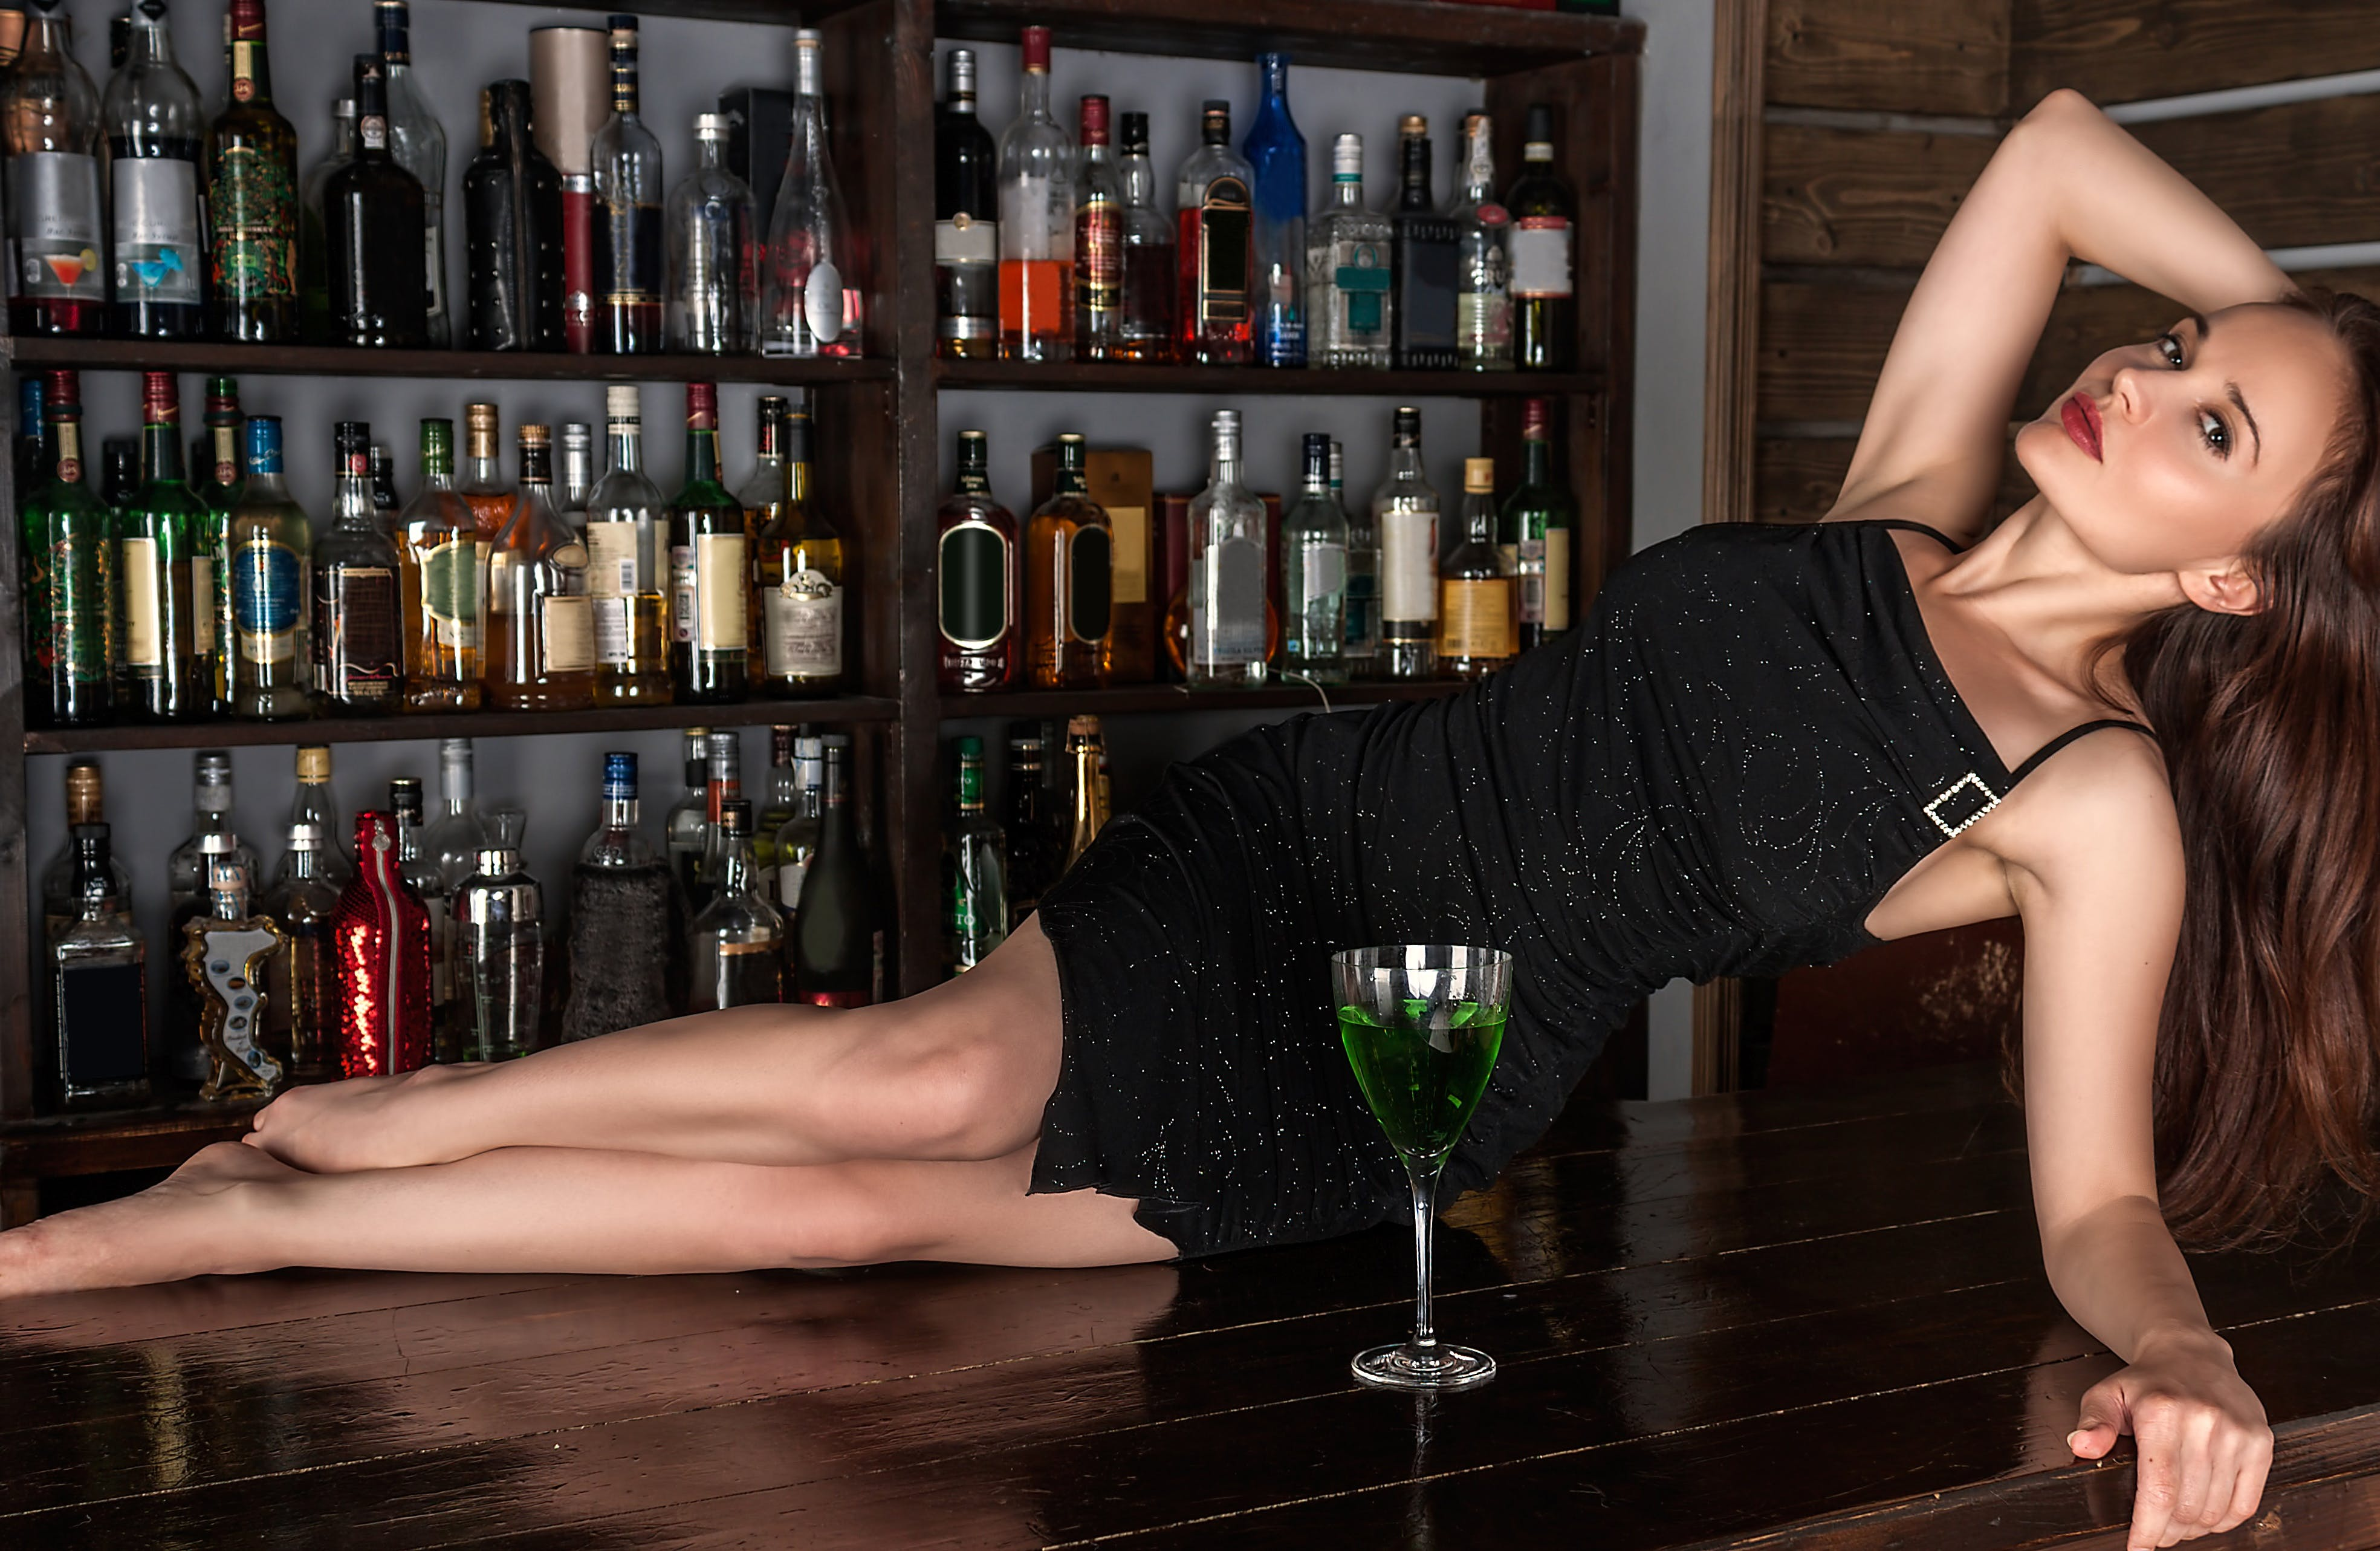 Woman in Black Dress Lying on Bar Table